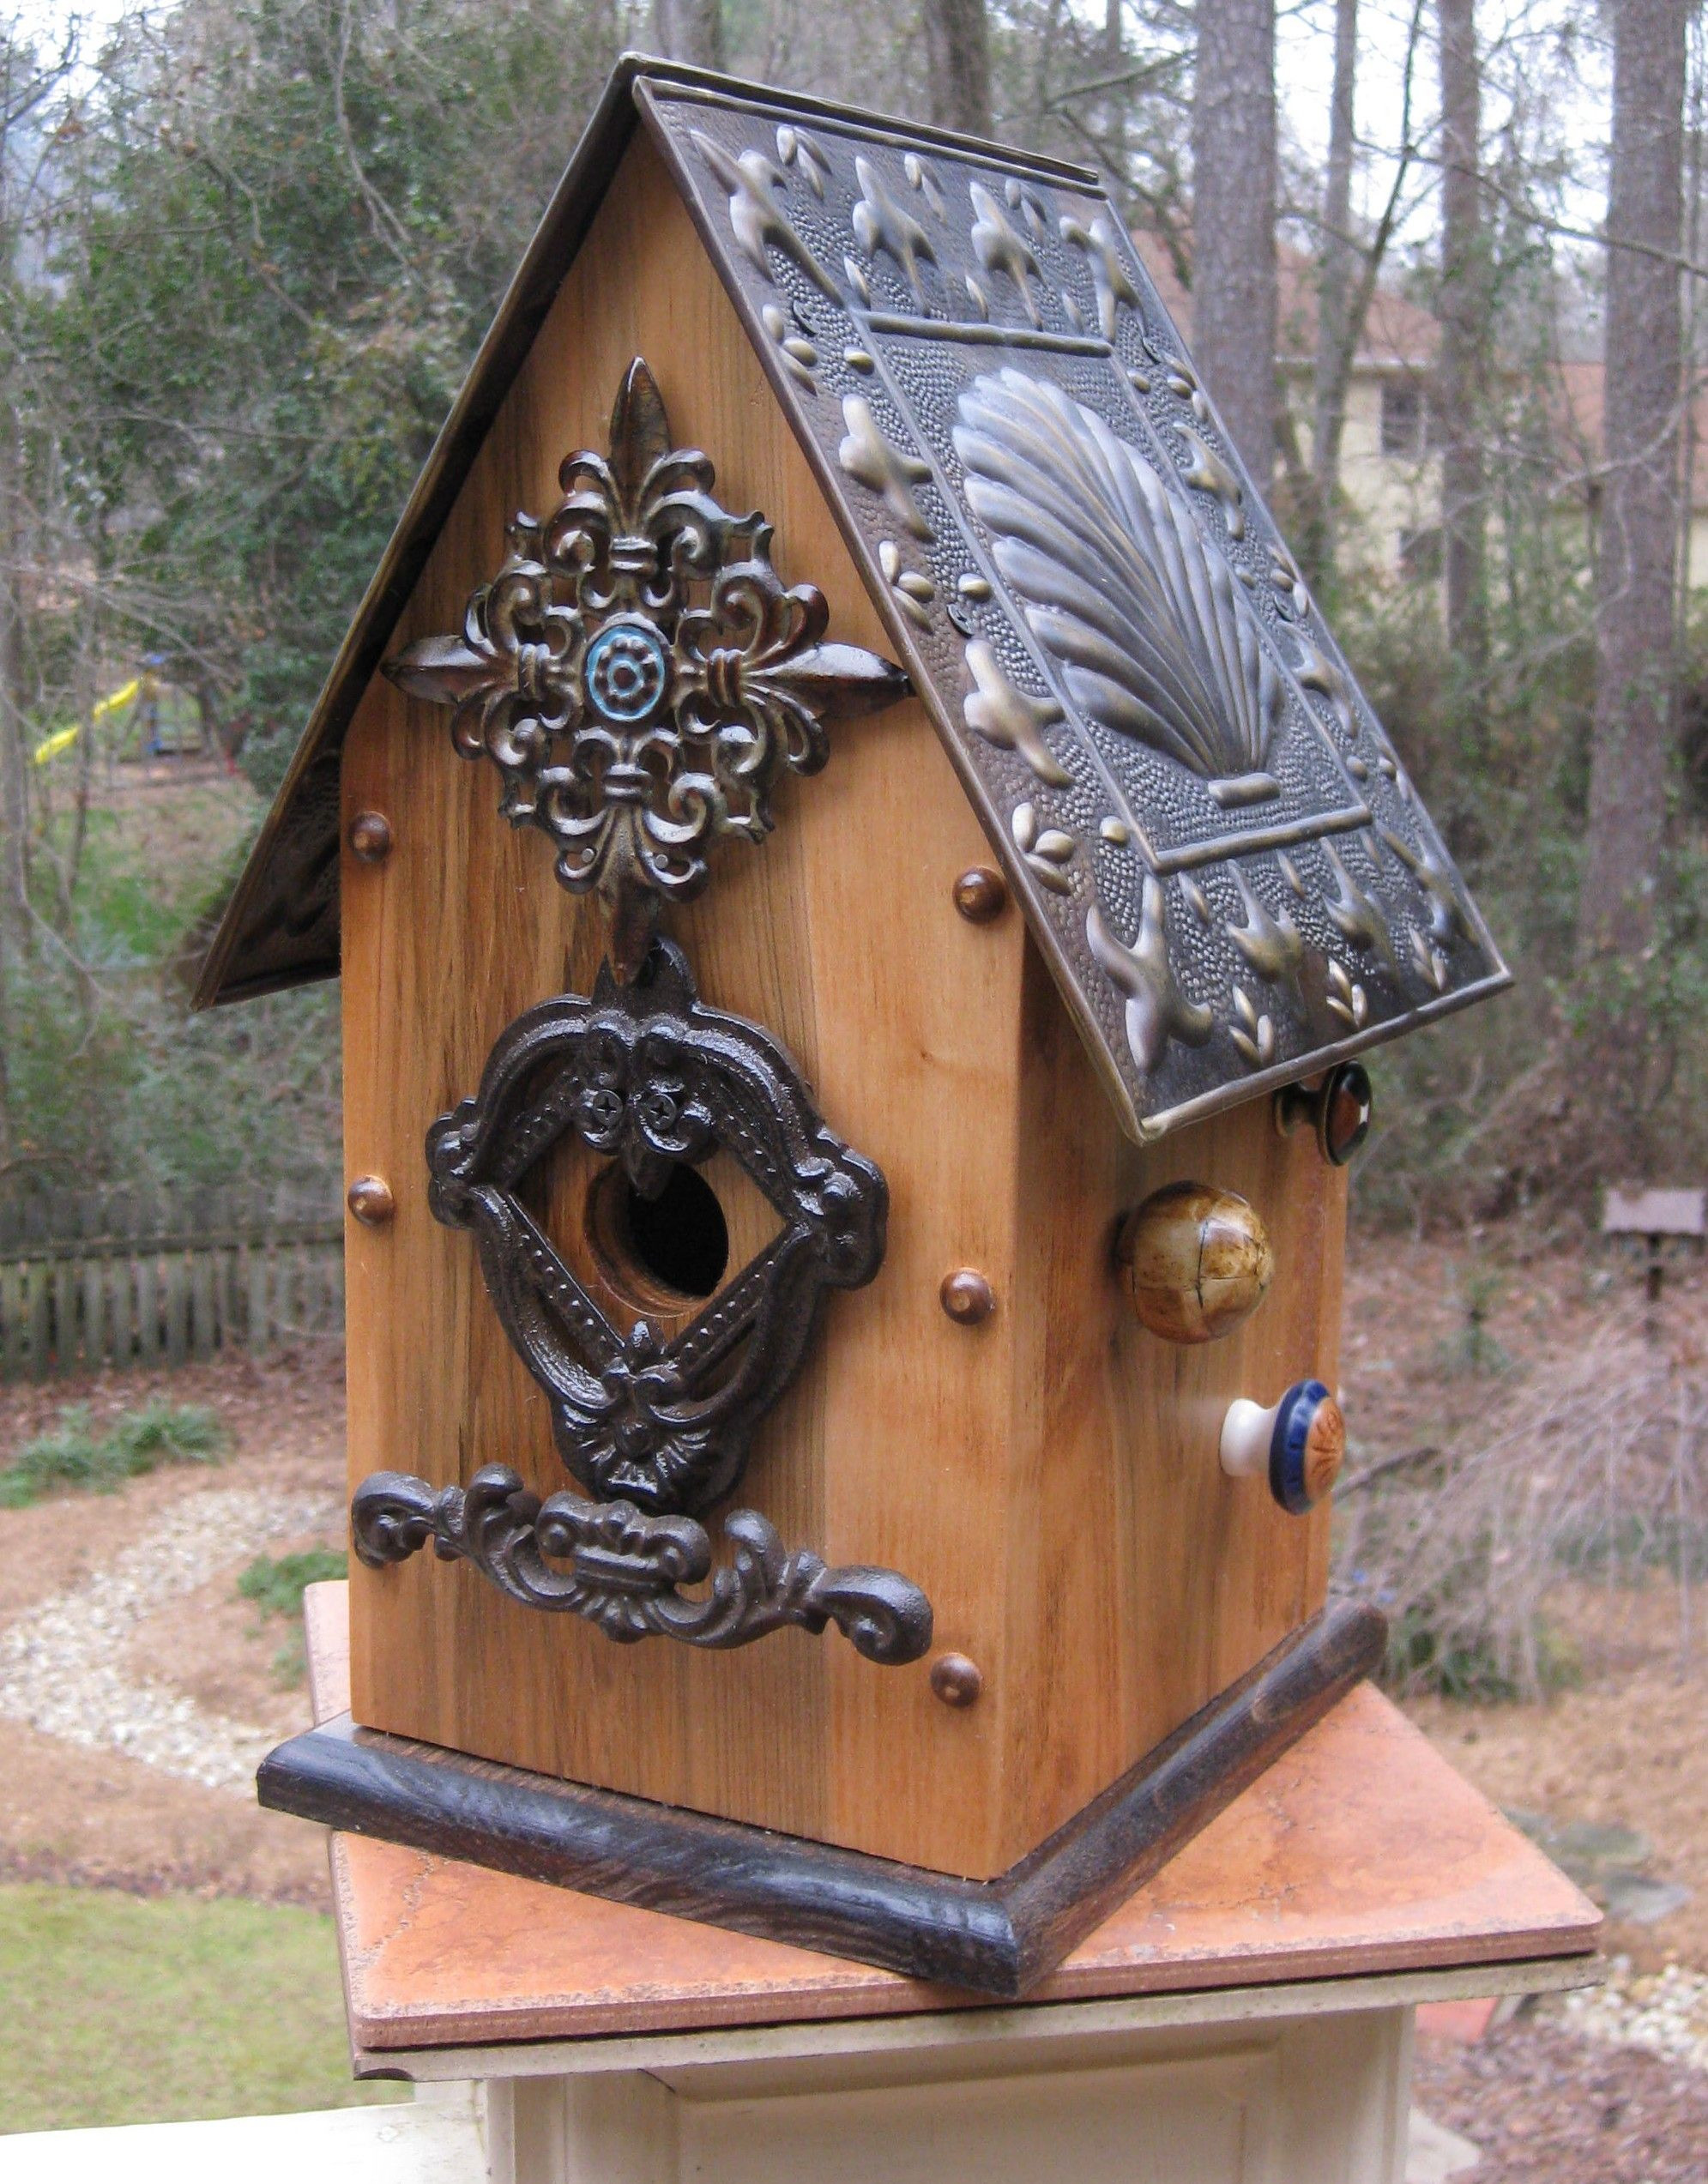 Decorative Bird House Plans Awesome Diy Birdhouse Roof Design Wooden Pdf Free Roll top Desk